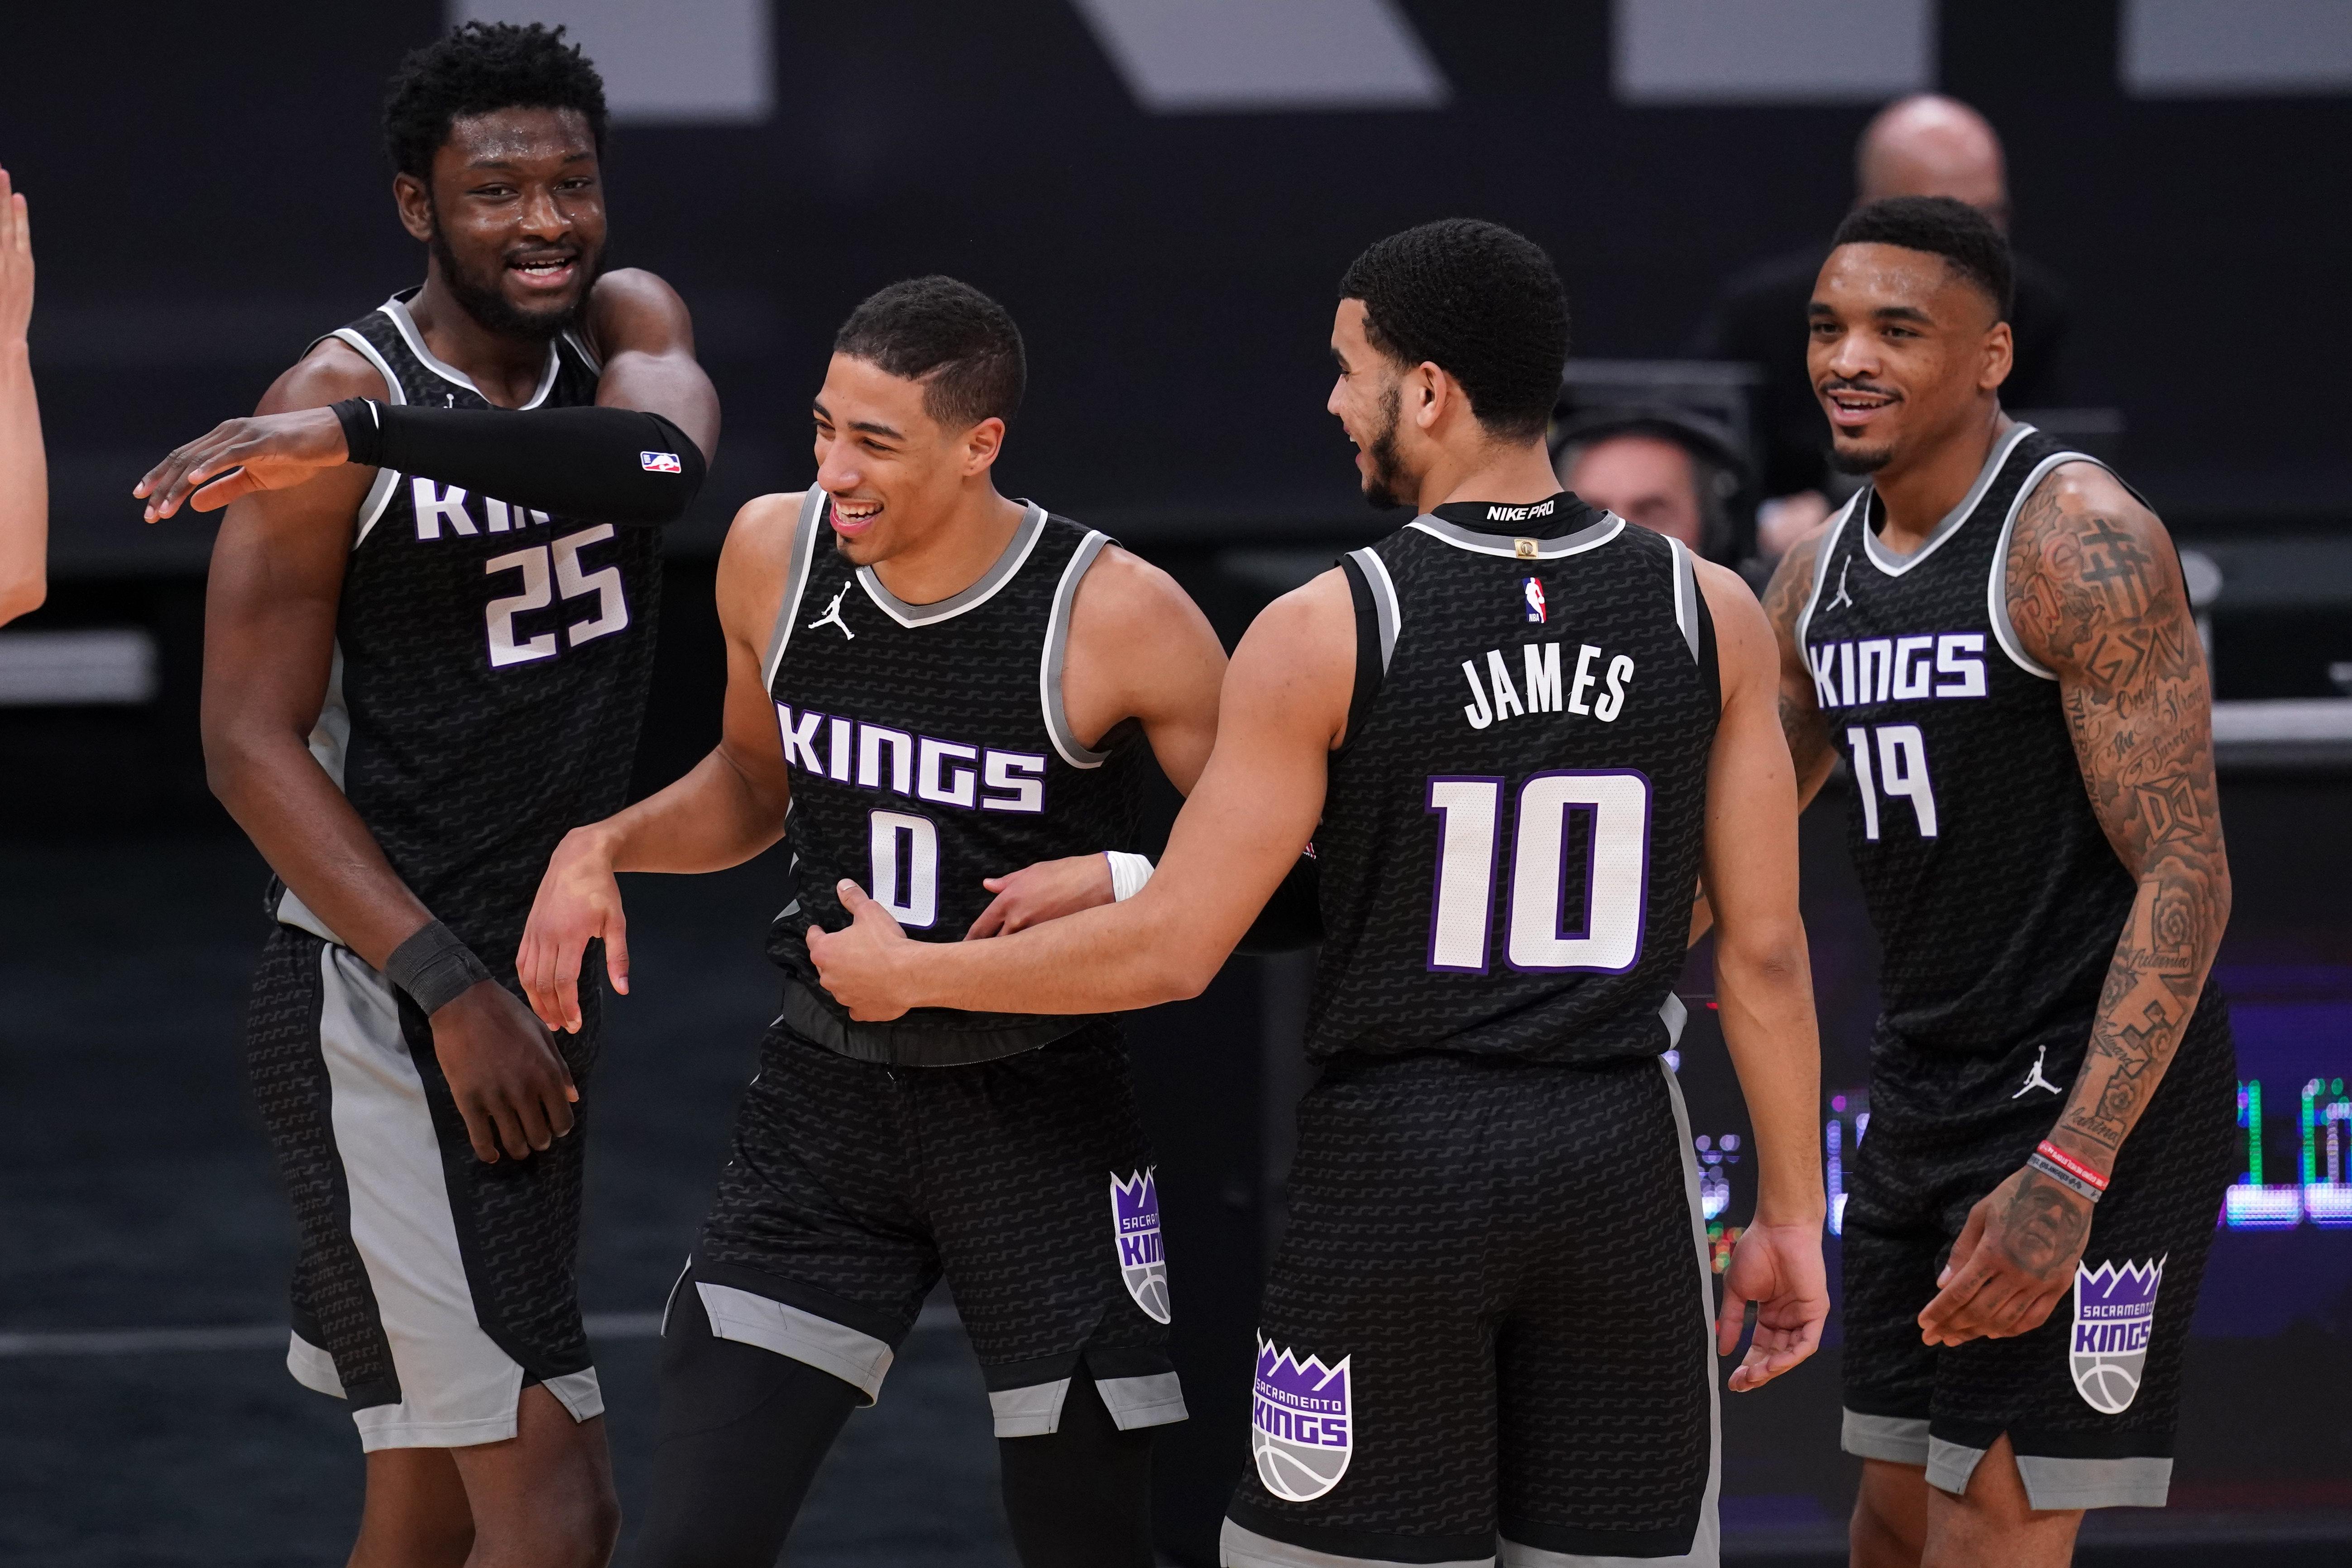 Mar 25, 2021; Sacramento, California, USA; Sacramento Kings guard Tyrese Haliburton (0) is congratulated by teammates after making a three point basket while being fouled against the Golden State Warriors in the third quarter at the Golden 1 Center. Mandatory Credit: Cary Edmondson-USA TODAY Sports